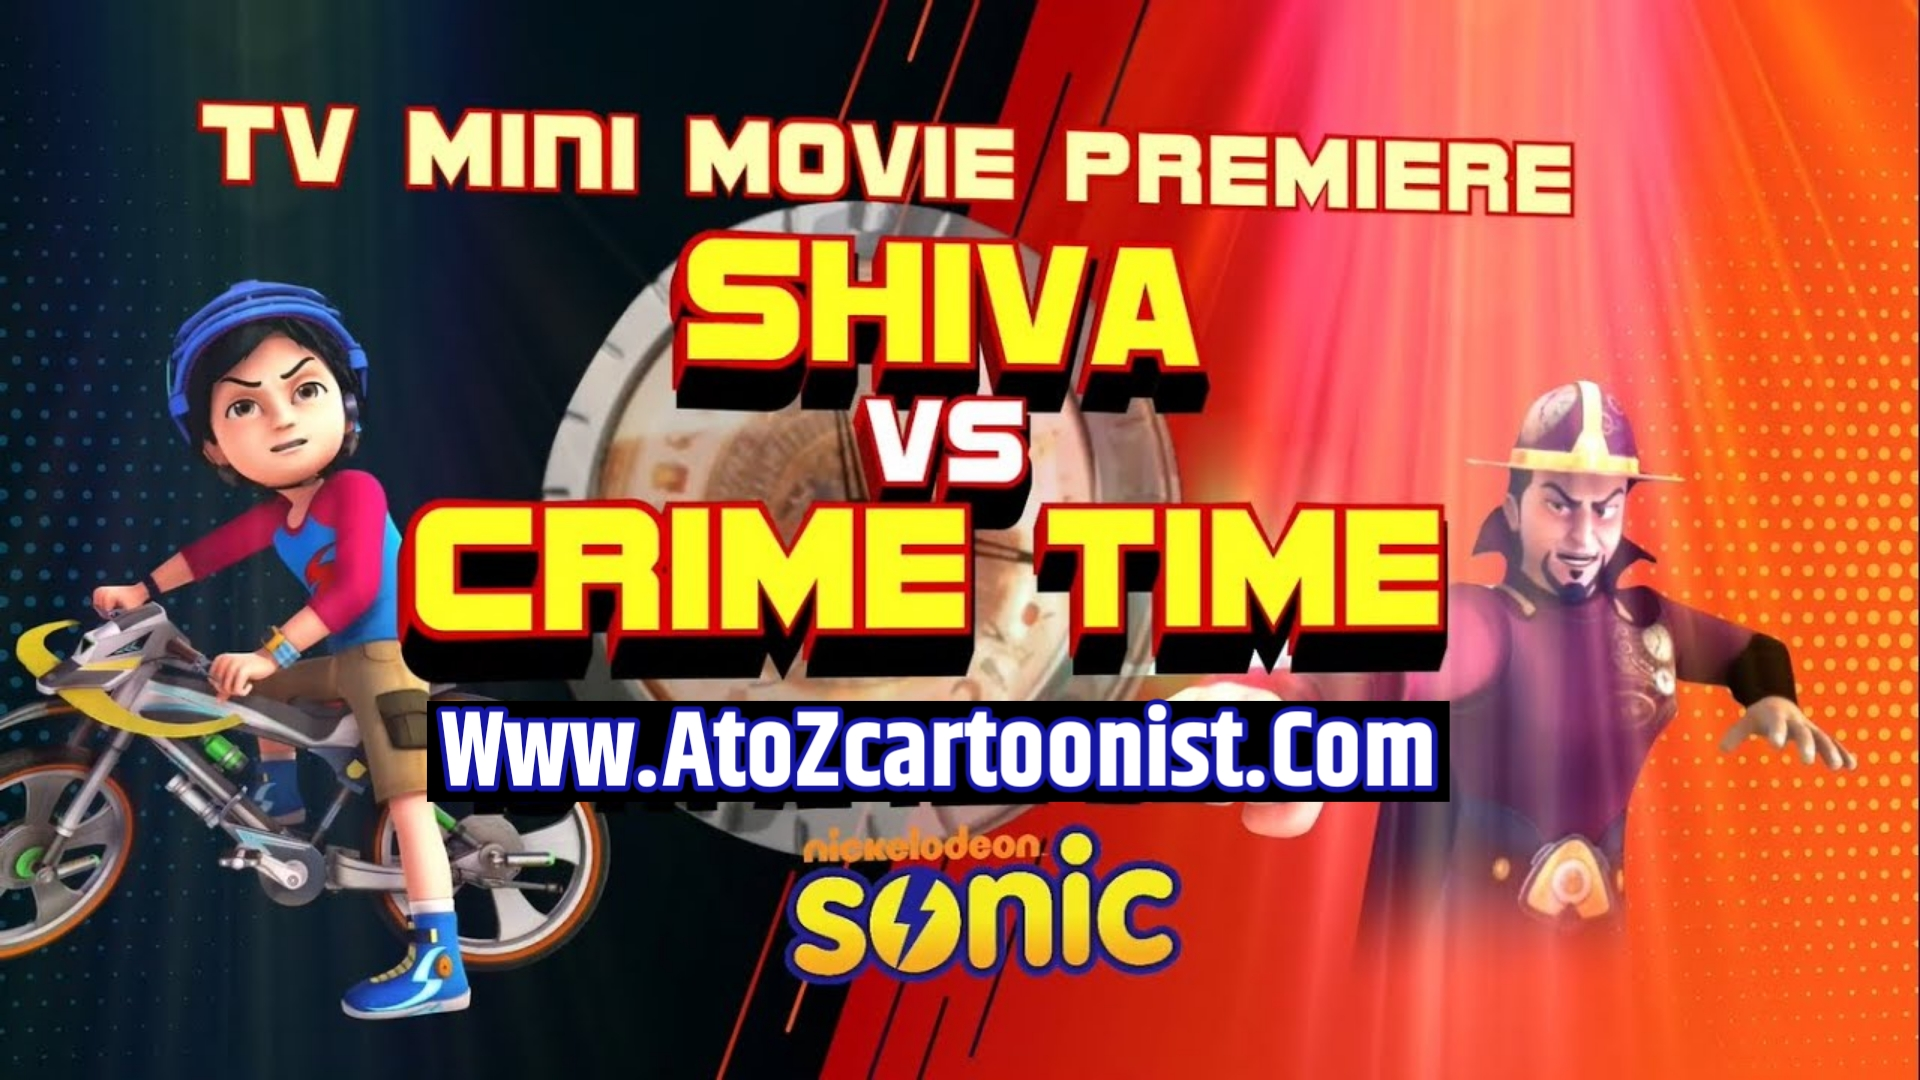 SHIVA VS CRIME TIME FULL MOVIE IN HINDI DOWNLOAD (720P HD)